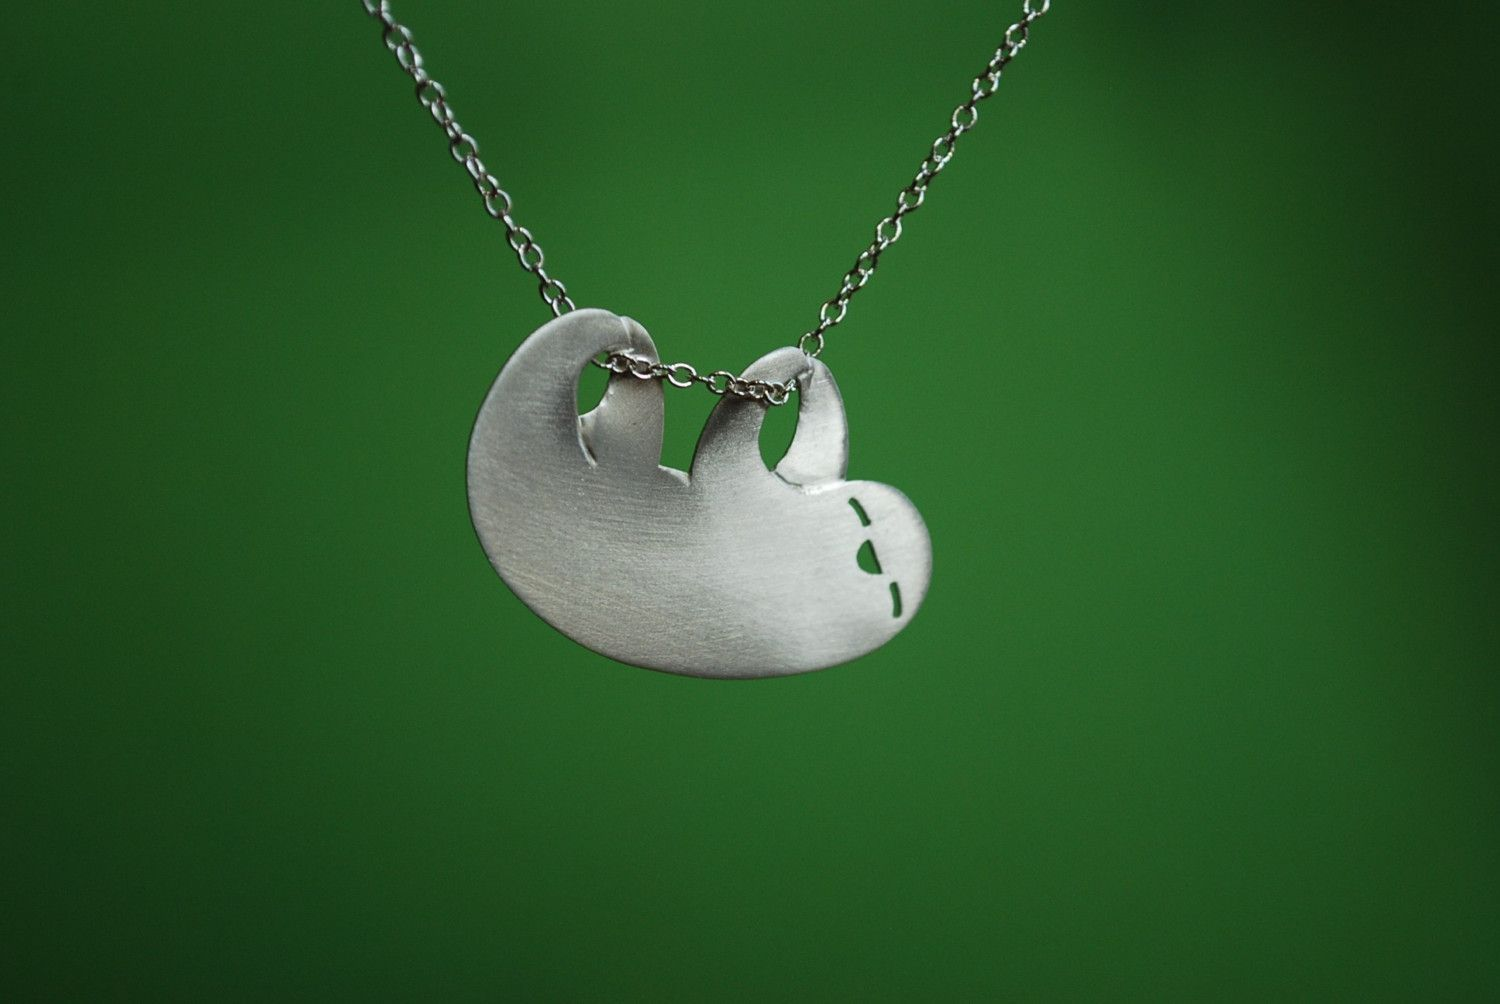 unique silver jewellery asp p sloth pendant stunning solid necklace handmade hanging